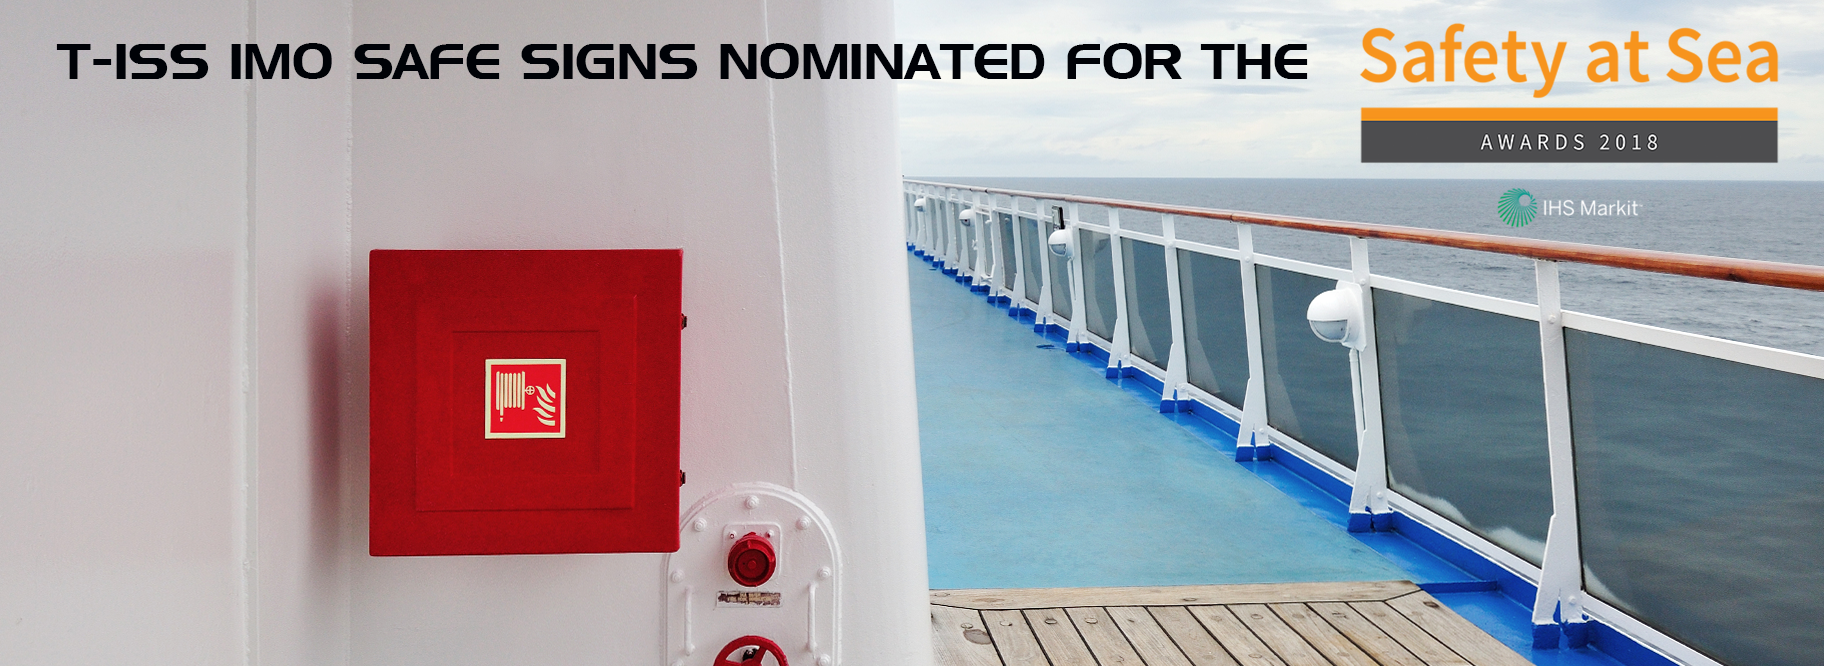 Safety at Sea award 2018 T-ISS Safe Signs